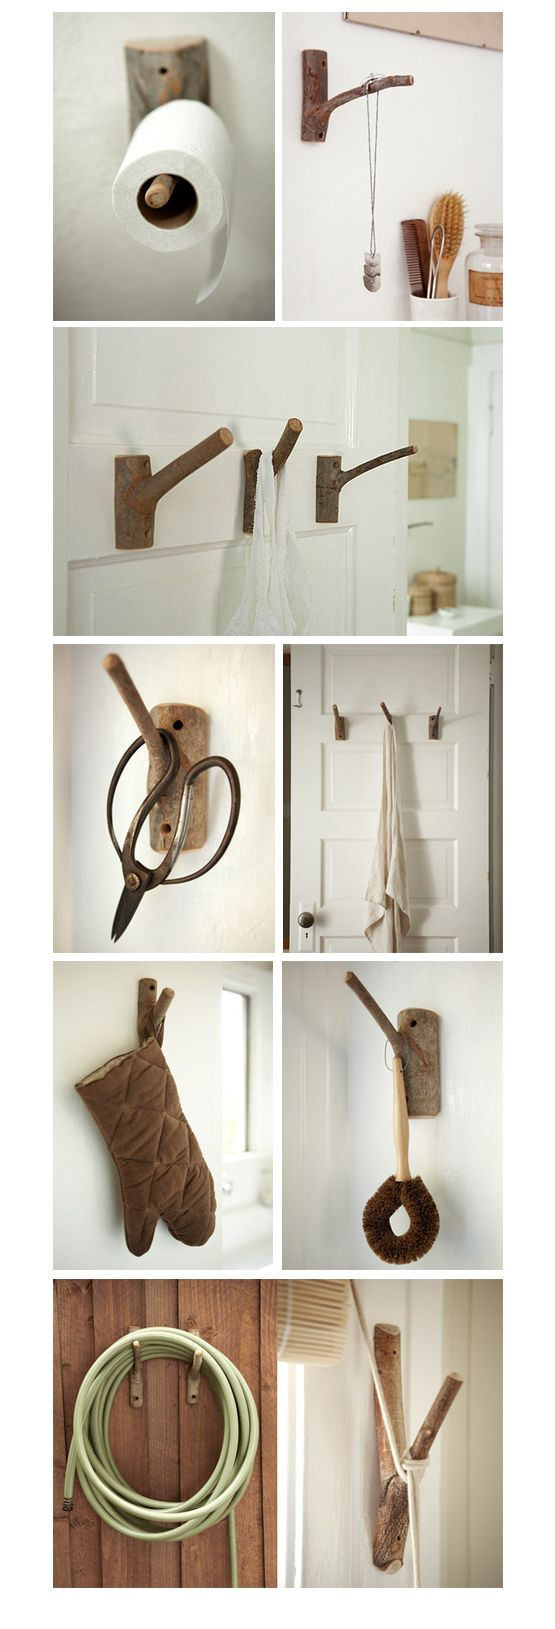 Make your own hooks for the mud room. I have made similar ones for my closet, they work great.